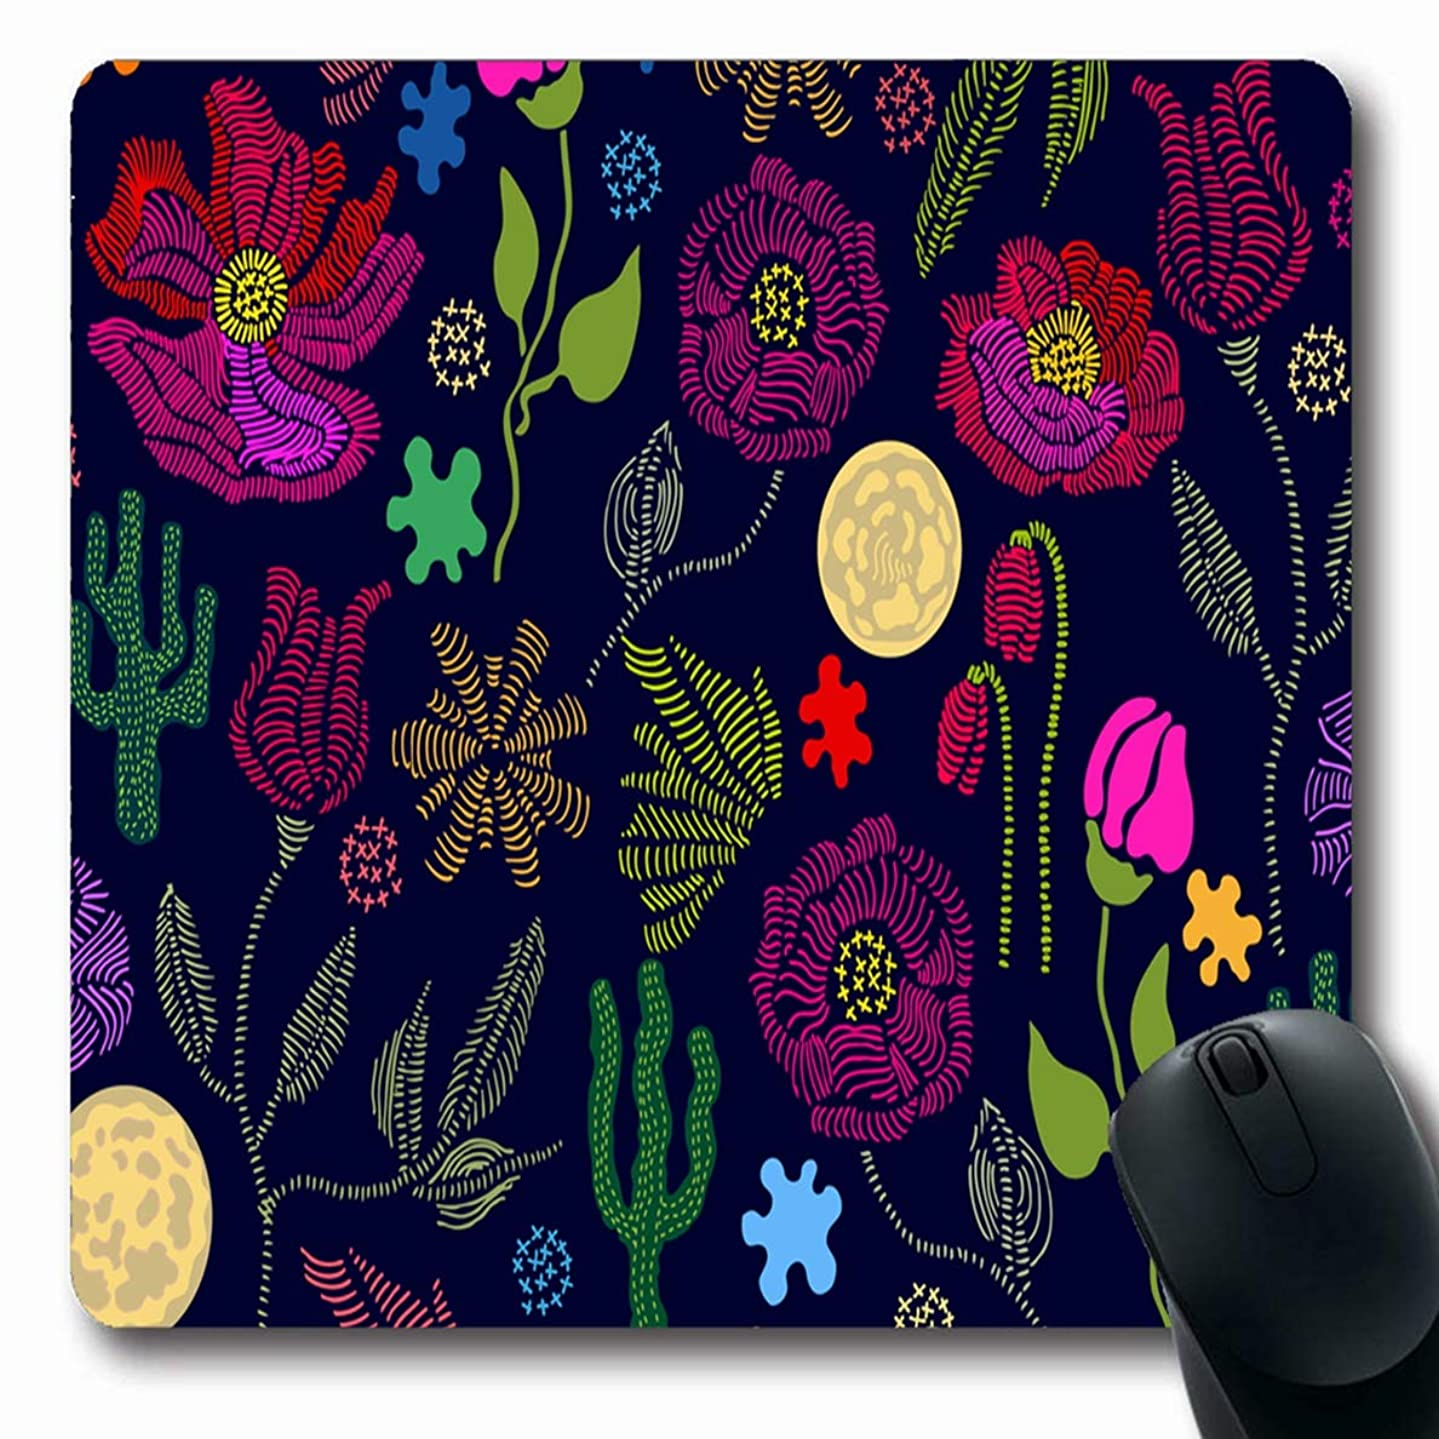 JAMRON Mousepad Oblong 9.8x11.4 Inches Green Red Folk Blloming Summer Garden Floral Leaves Boho Strokes 50S 60S Cactus Non-Slip Rubber Mouse Pad Laptop Notebook